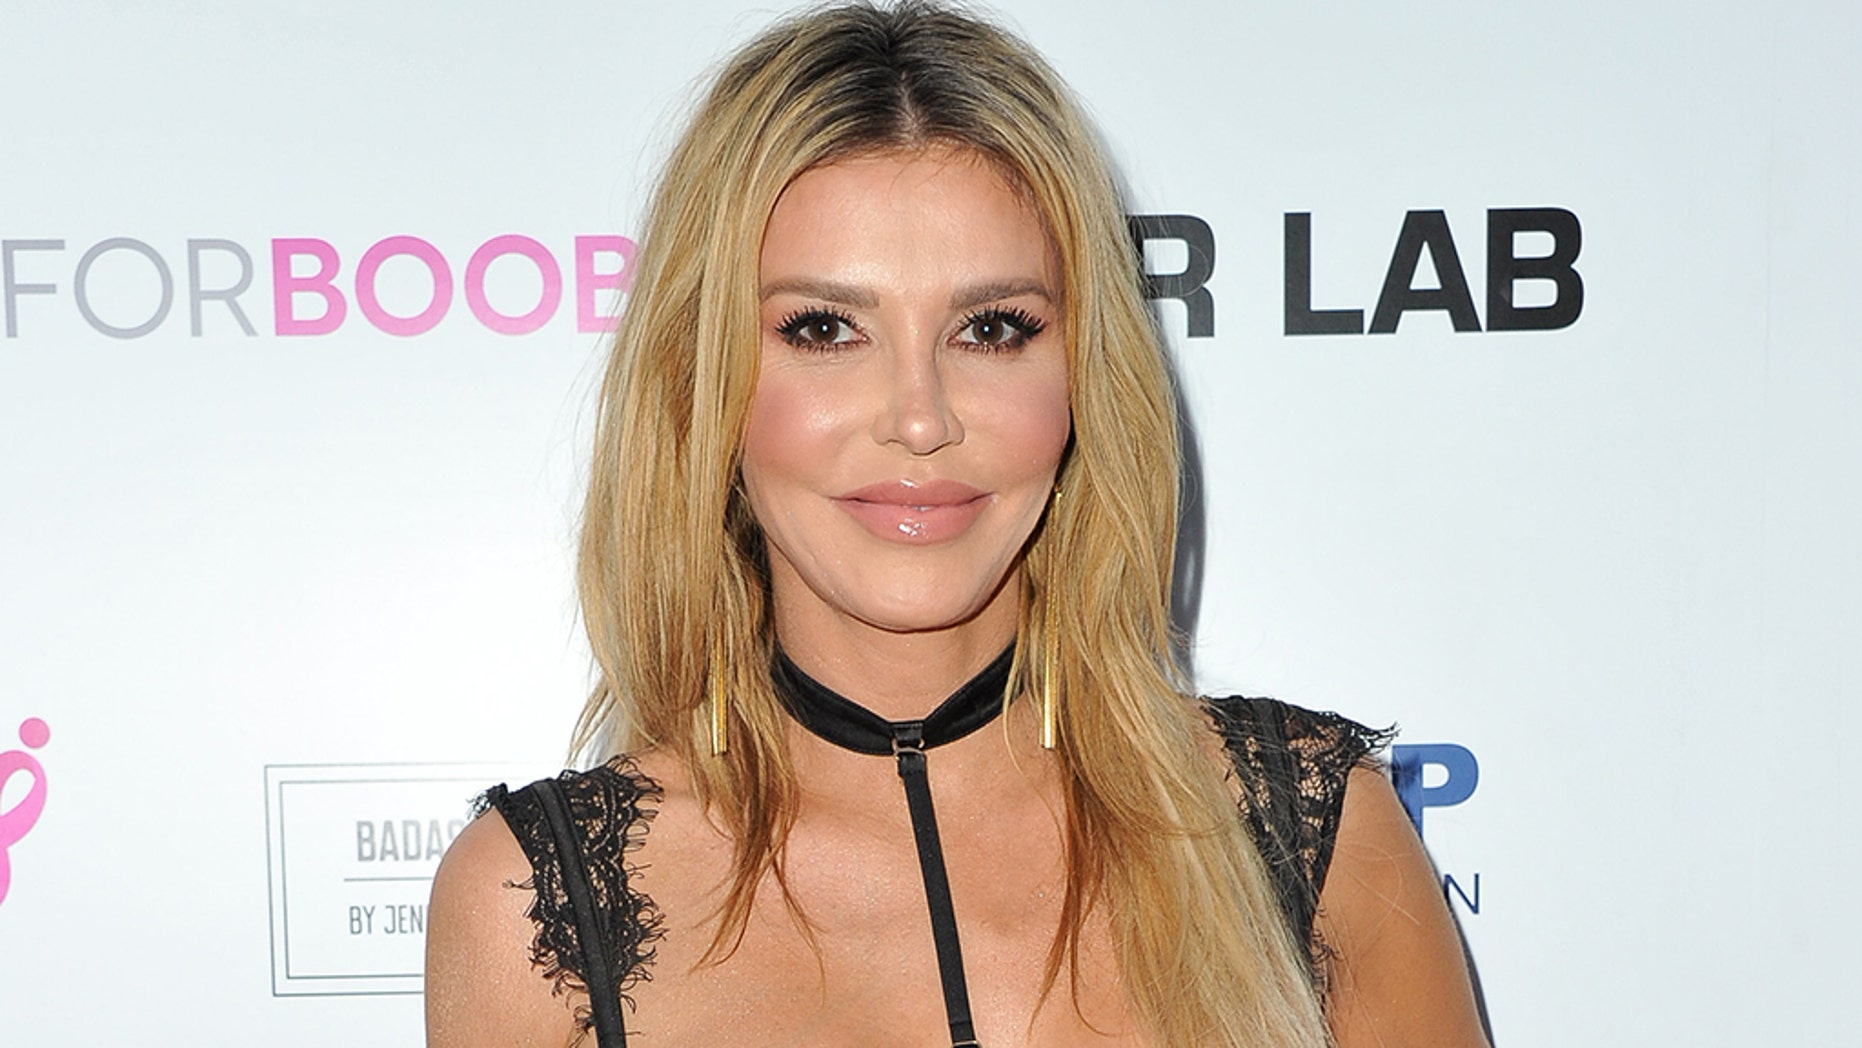 Brandi Glanville revealed on Tuesday that her home was burglarized while she and her two sons were there.